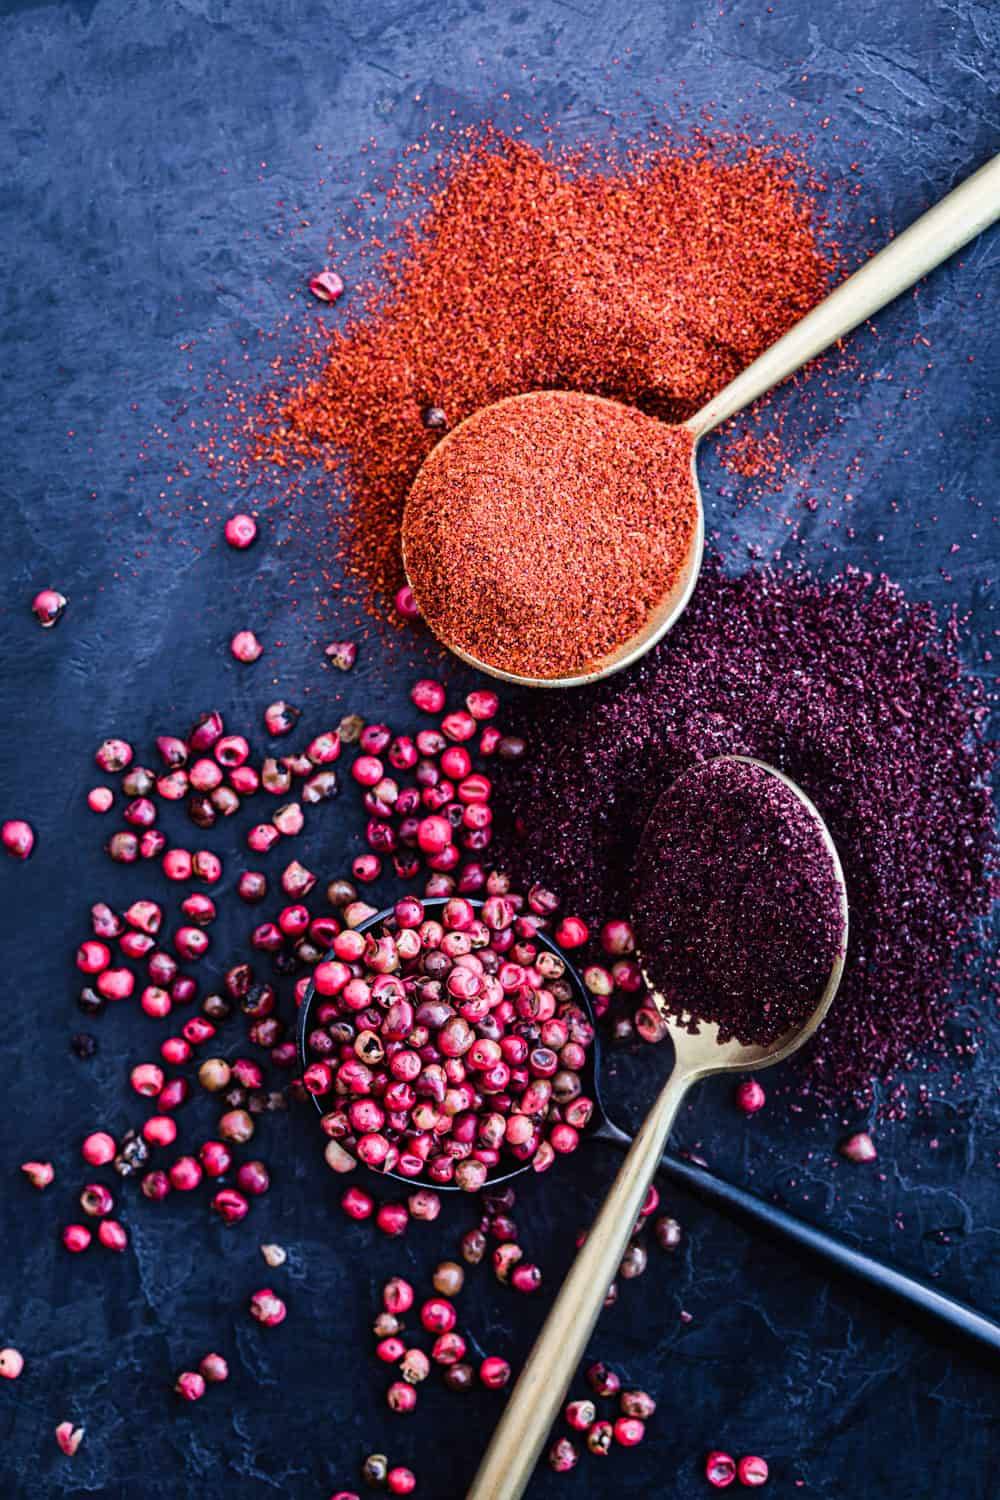 ingredient shot of sumac, paprika and pink peppercorns